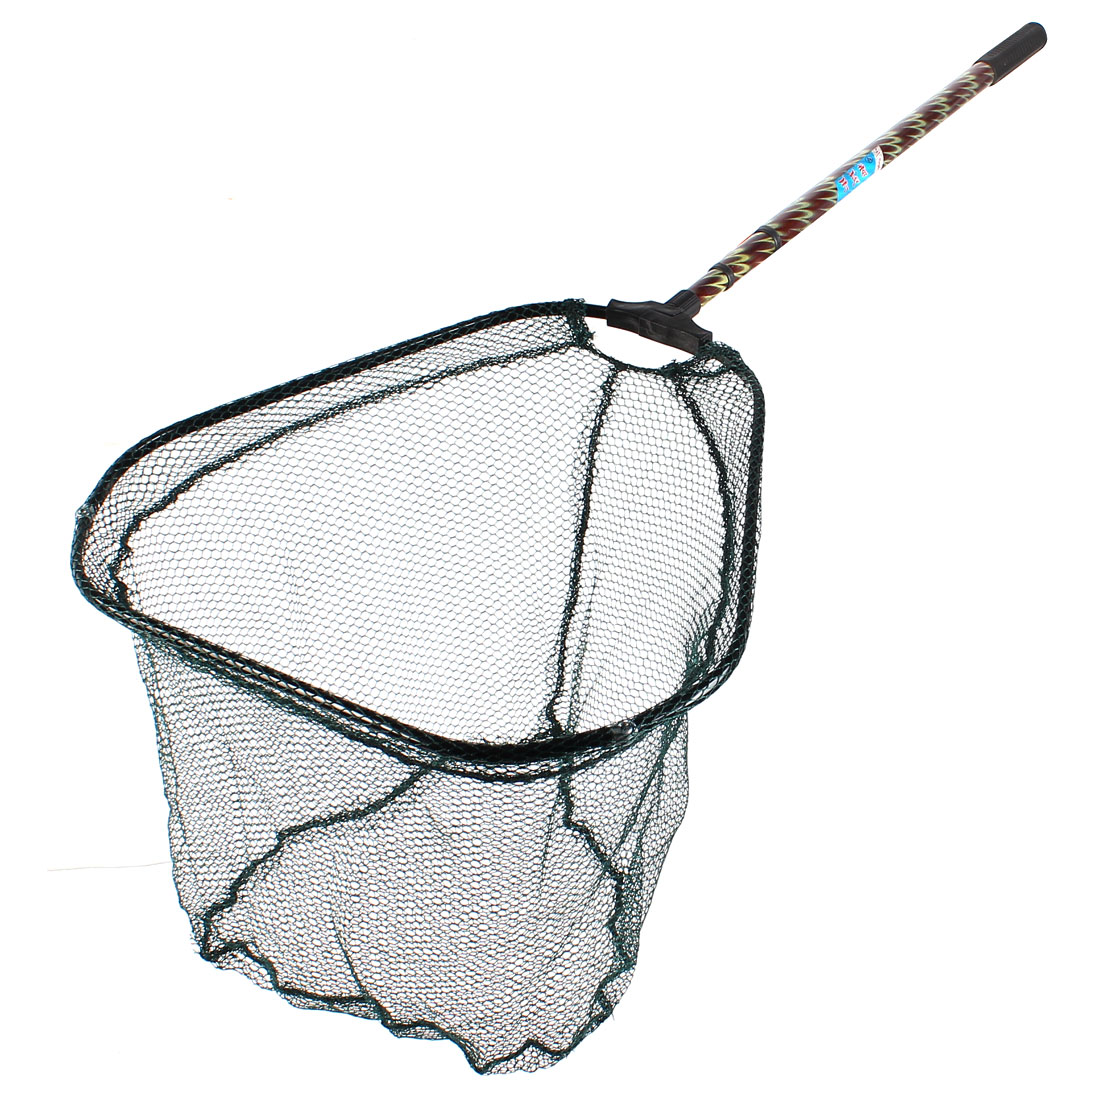 Retractable 3 Sections Nonslip Grip 41cm Width Frame Fish Landing Net